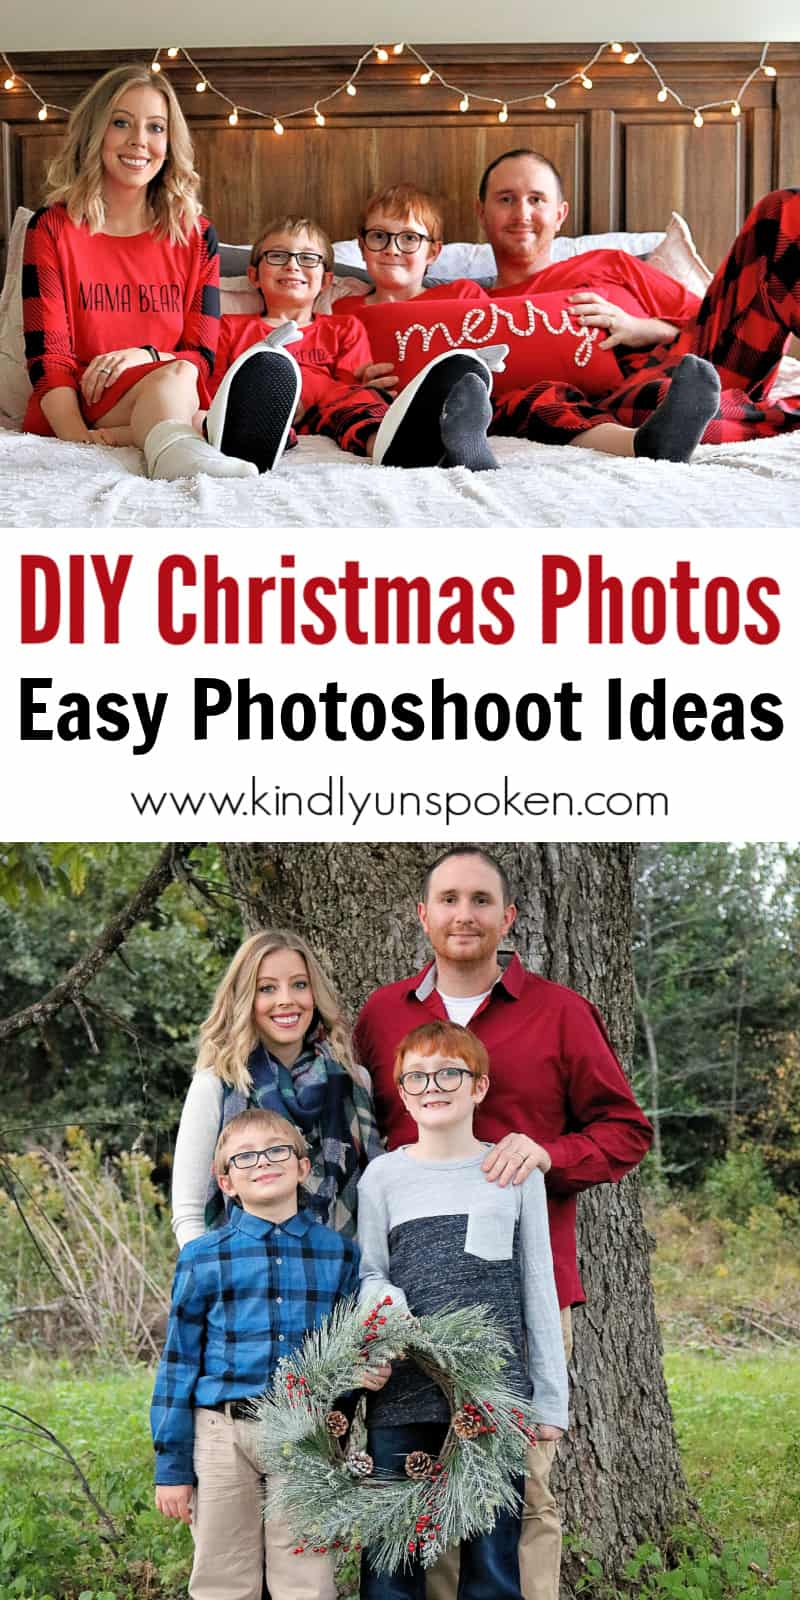 Want to take your Family Christmas Photos yourself this year? Learn how to take DIY Family Christmas Photos at home with my best tips on how to choose the location, what to wear with cute and affordable outfit ideas, and a list of fun and easy Christmas photoshoot ideas for families and kids. Plus, check out how to create a cozy matching pajamas bedroom photoshoot and outdoor photoshoot with holiday décor, outfits, and props from Bealls Outlet. #christmasphotos #christmascardphotos #bfinding #BeallsOutlet